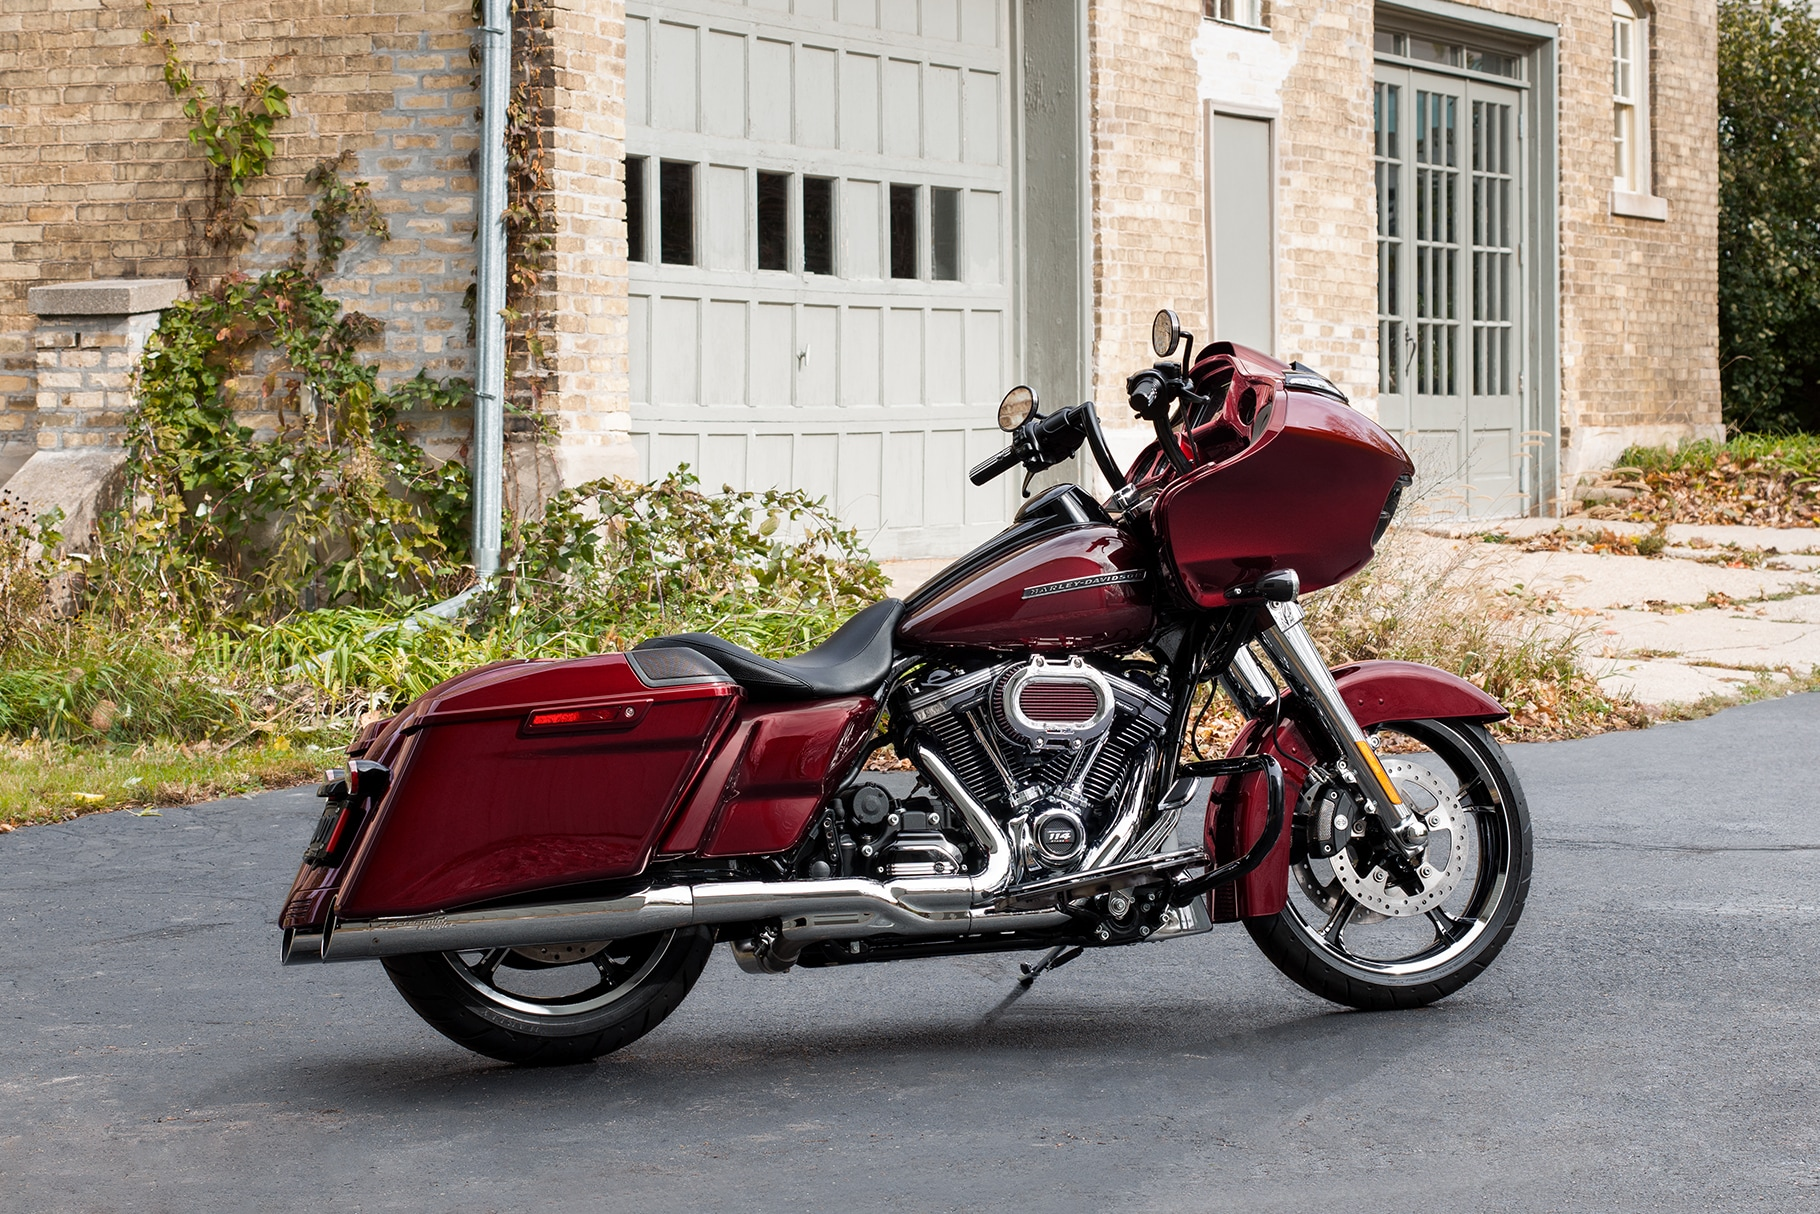 Parked 2019 H-D Road Glide Red motorcycle